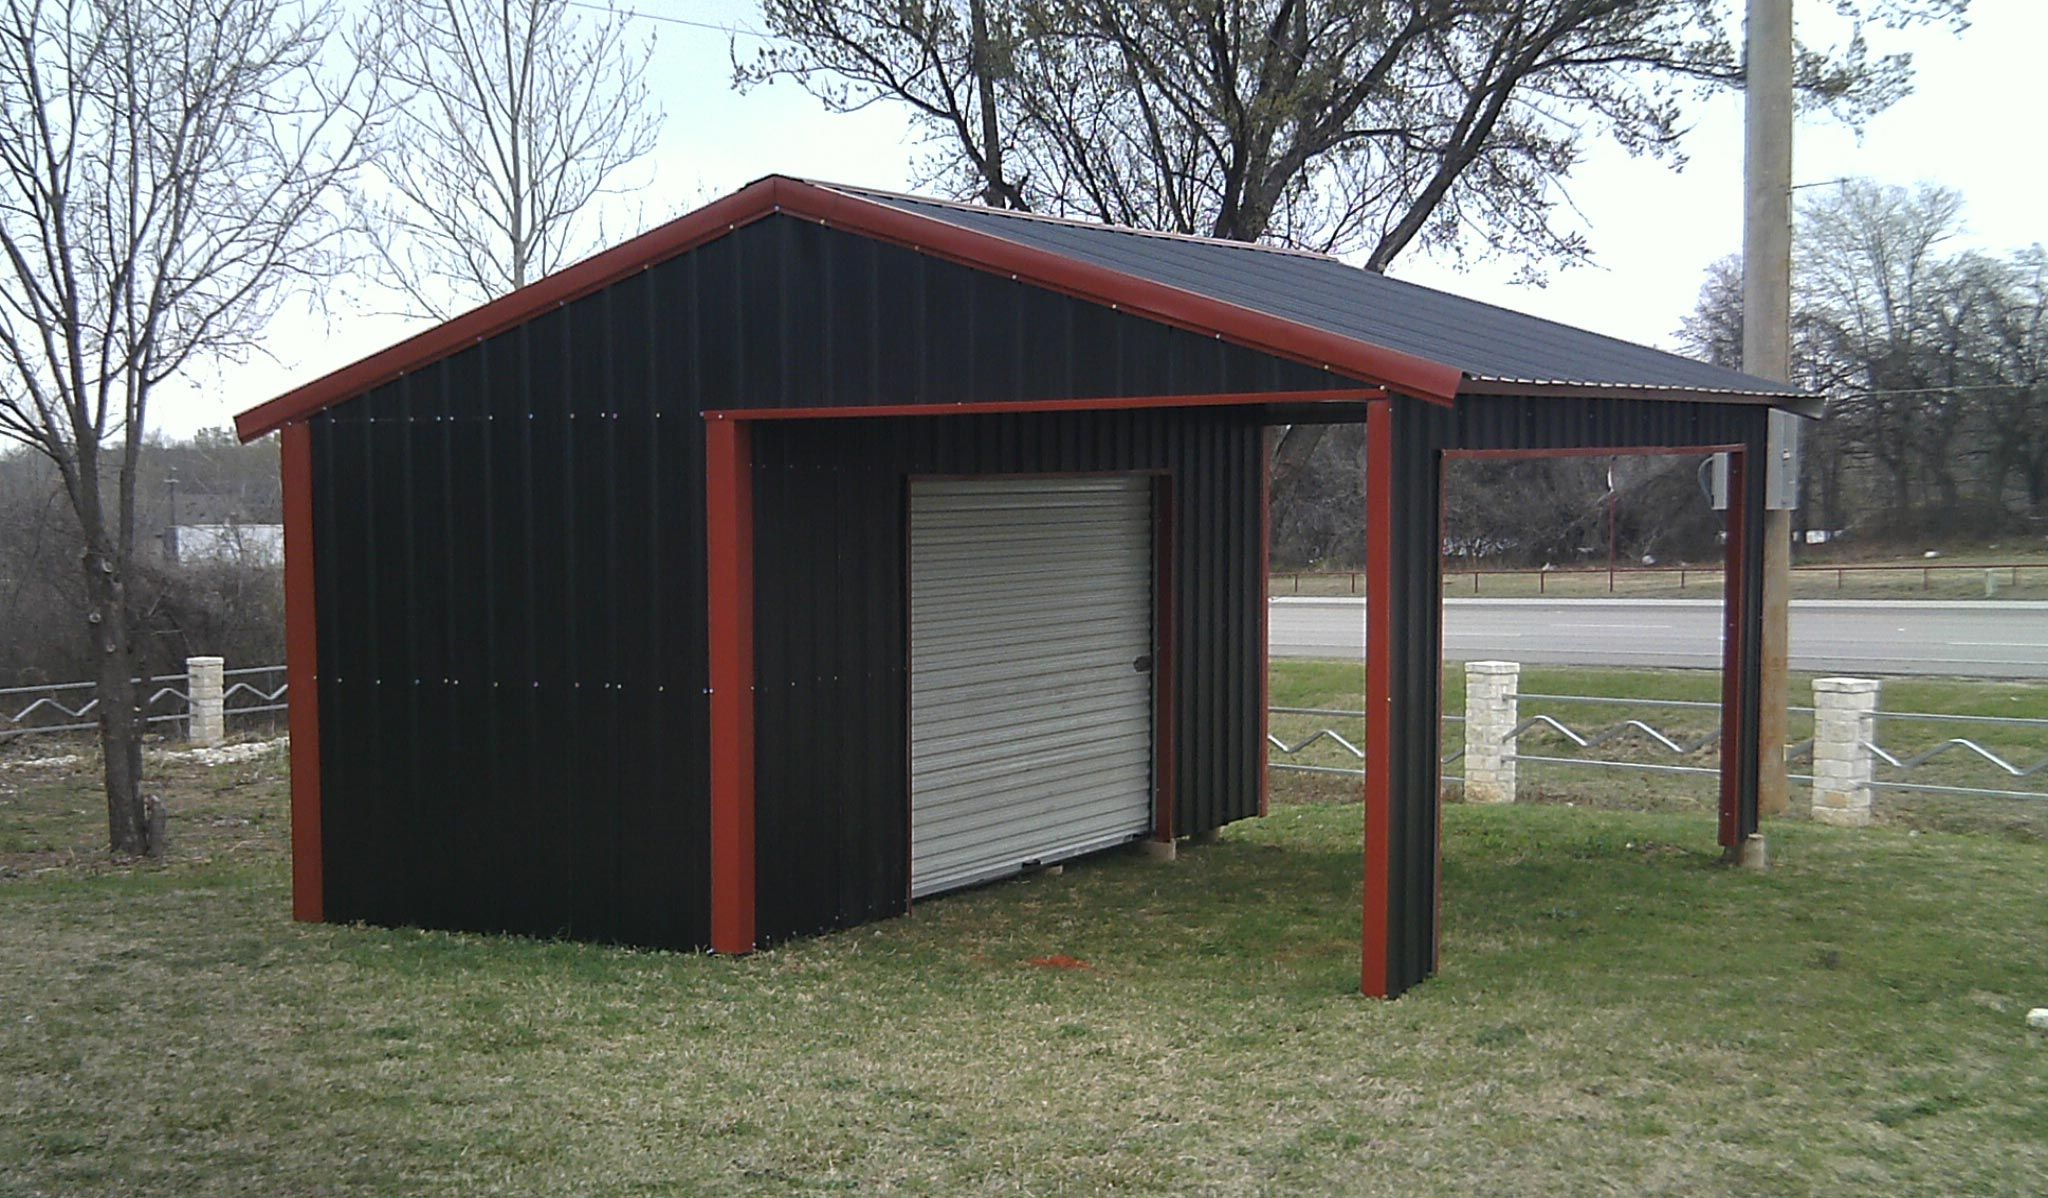 American steel carport a frame vertical partial for Carport with storage shed attached